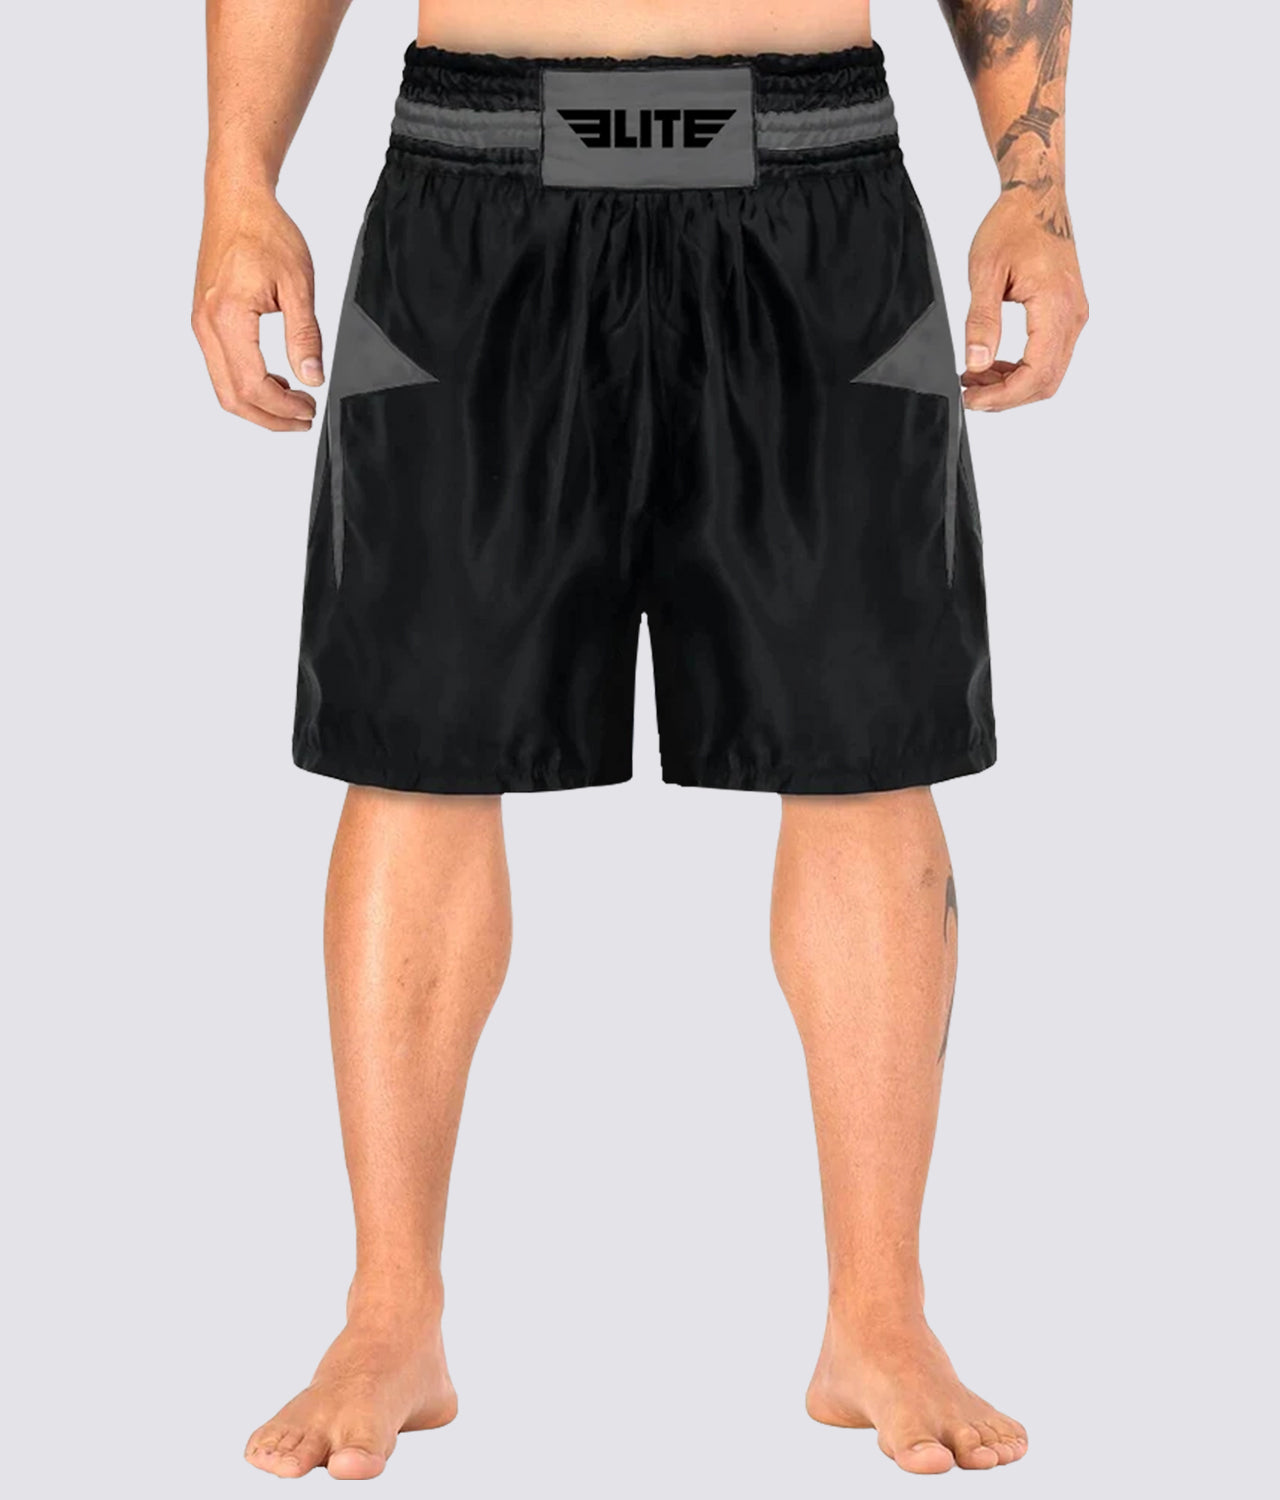 Elite Sports Star Series Sublimation Extreme Softness Black/Gray Boxing Shorts